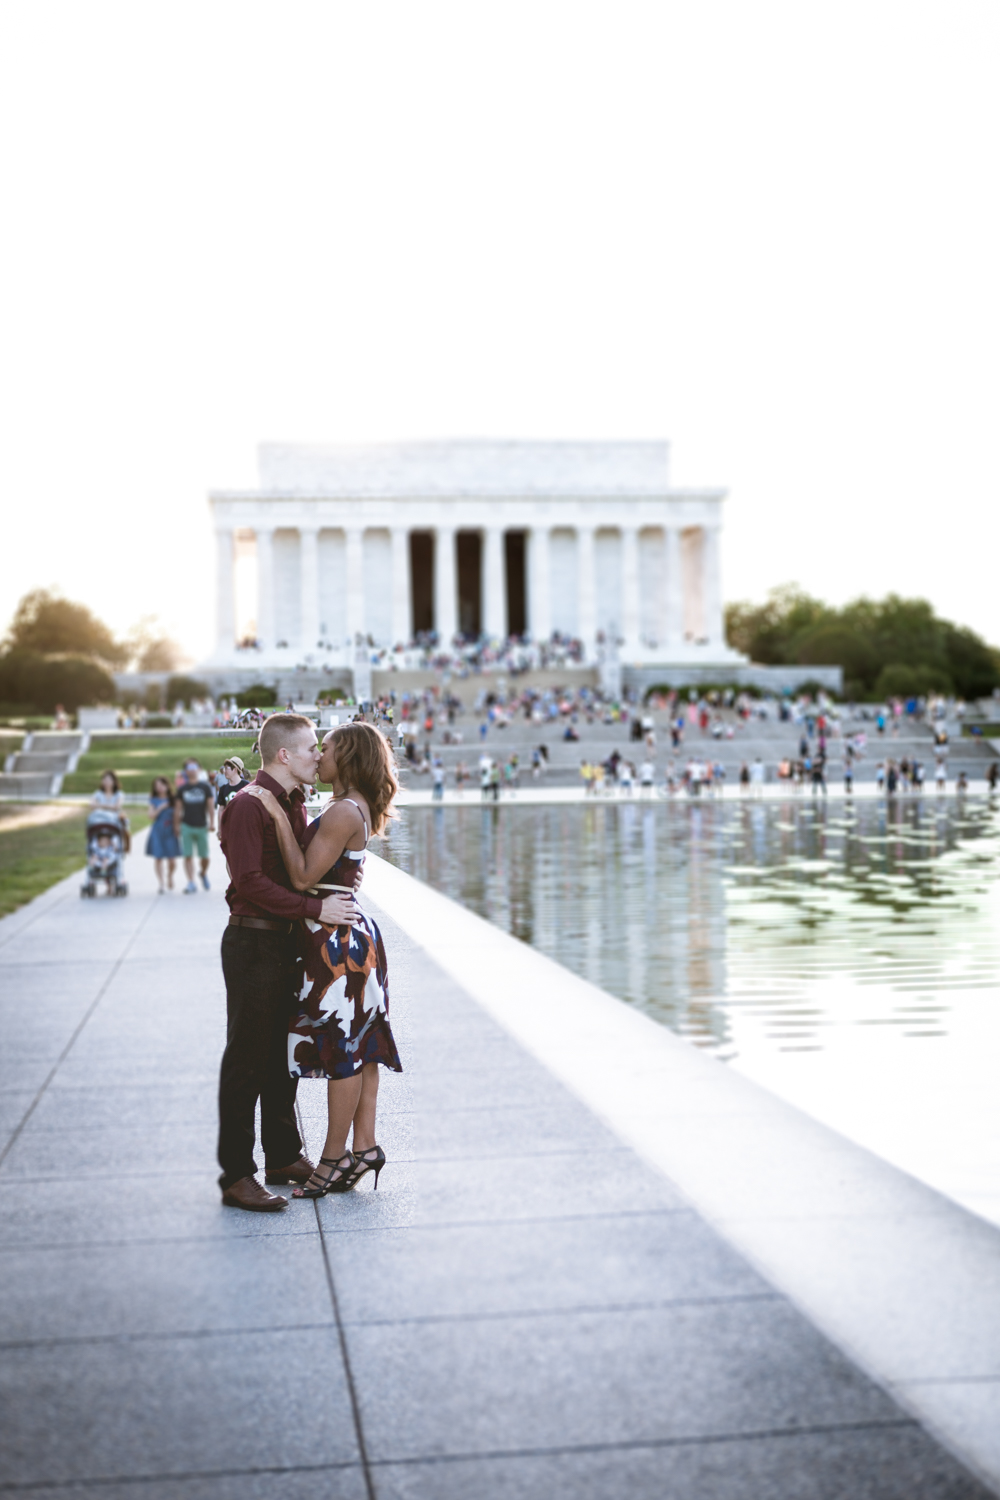 Lincoln Memorial Engagment Photography (6 of 7)